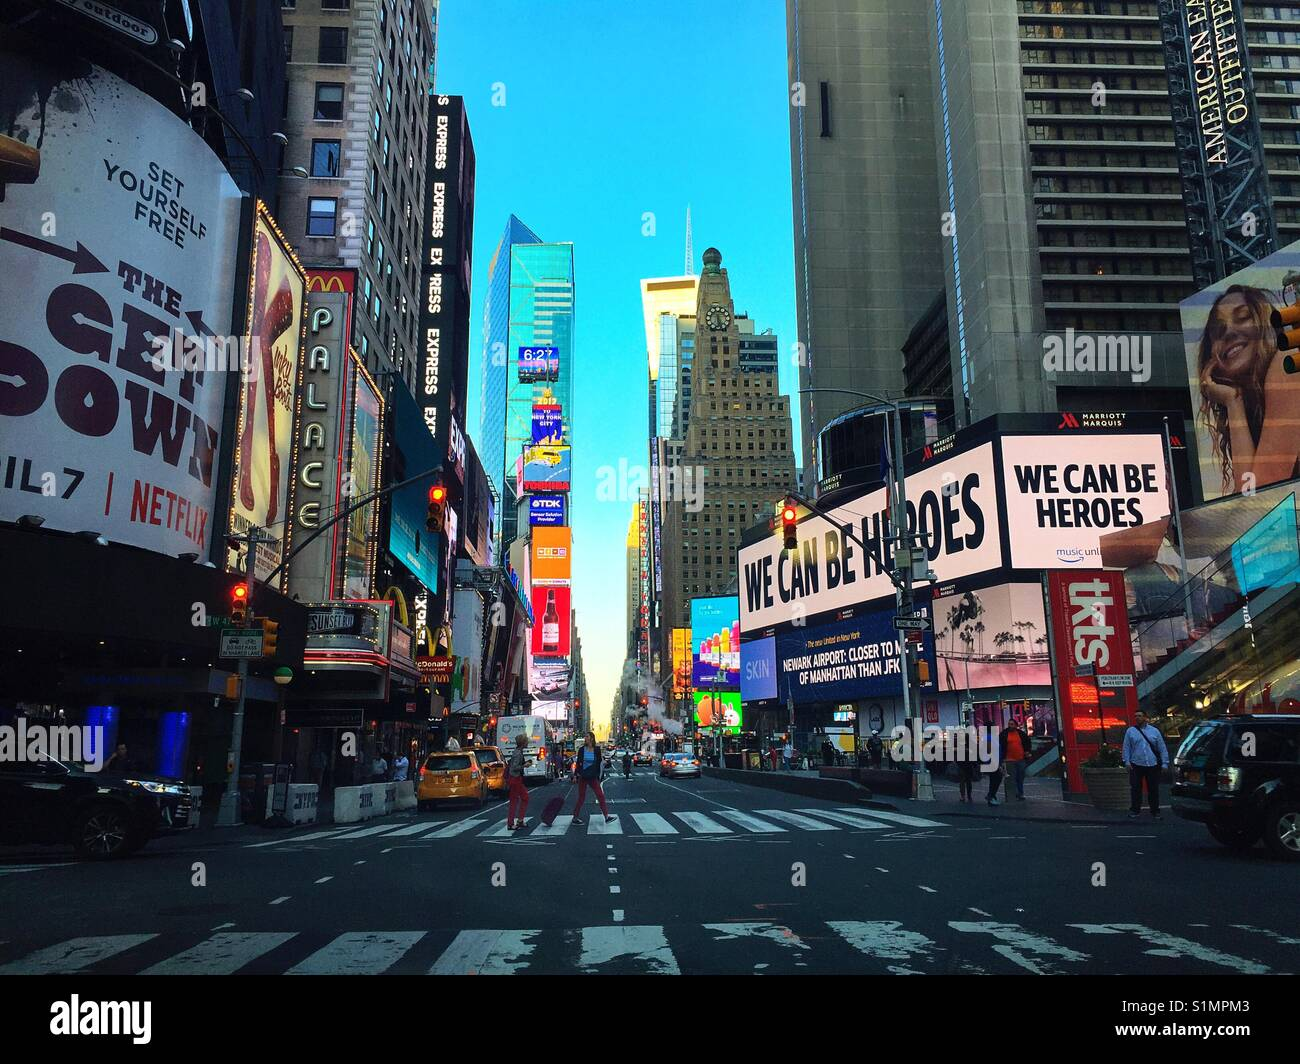 Mornings in Times Square.! - Stock Image